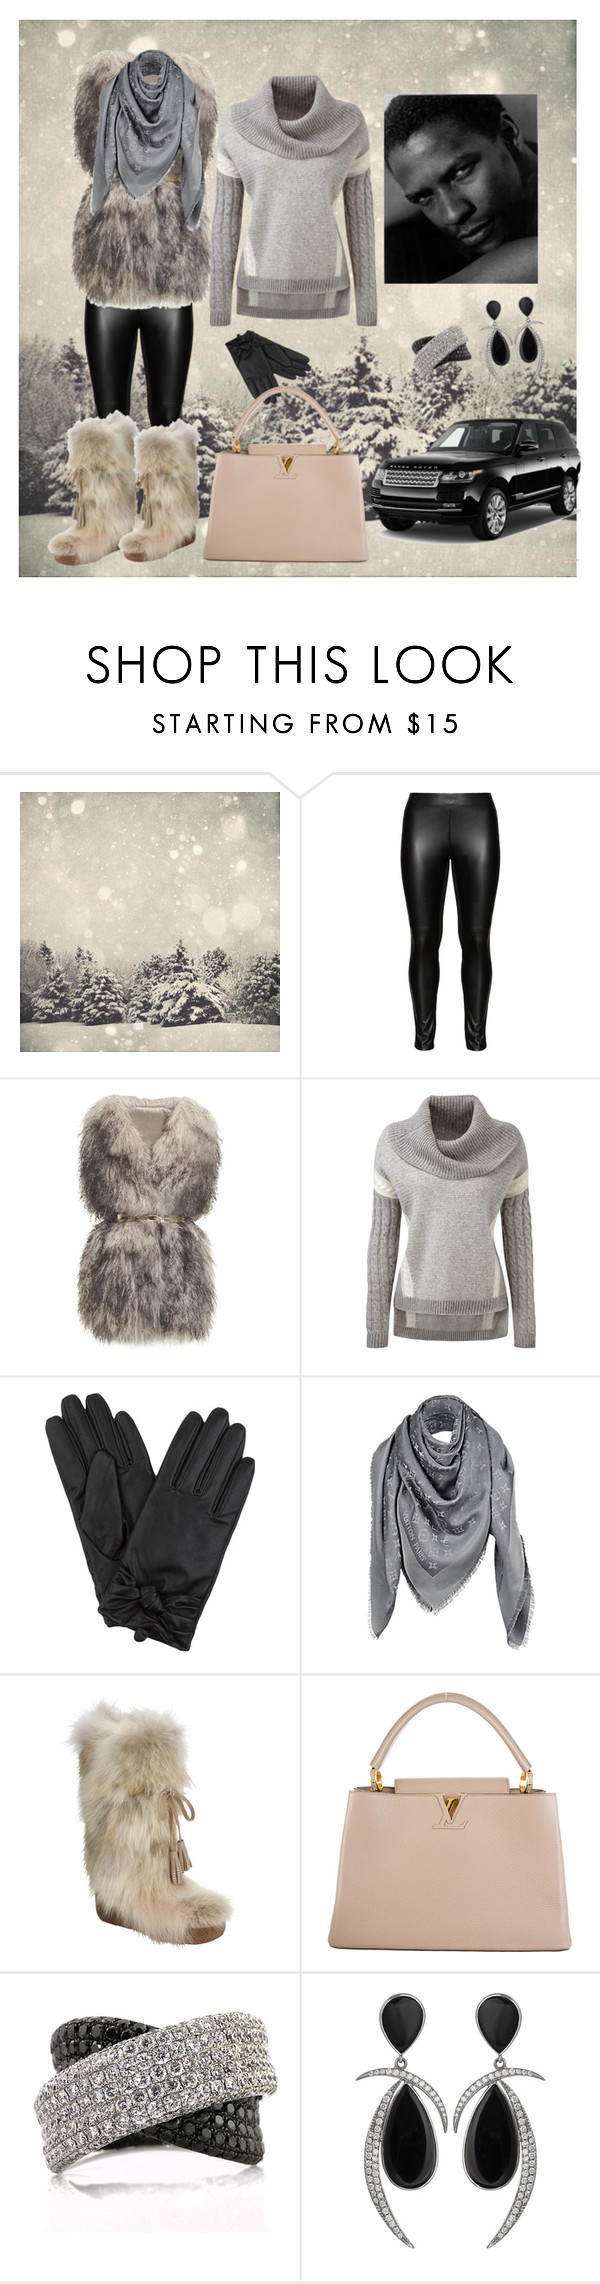 """""""Untitled #113"""" by arabakone ❤ liked on Polyvore featuring Studio, PINGHE, Louis Vuitton, Mark Broumand, Jorge Adeler, women's clothing, women's fashion, women, female and woman"""